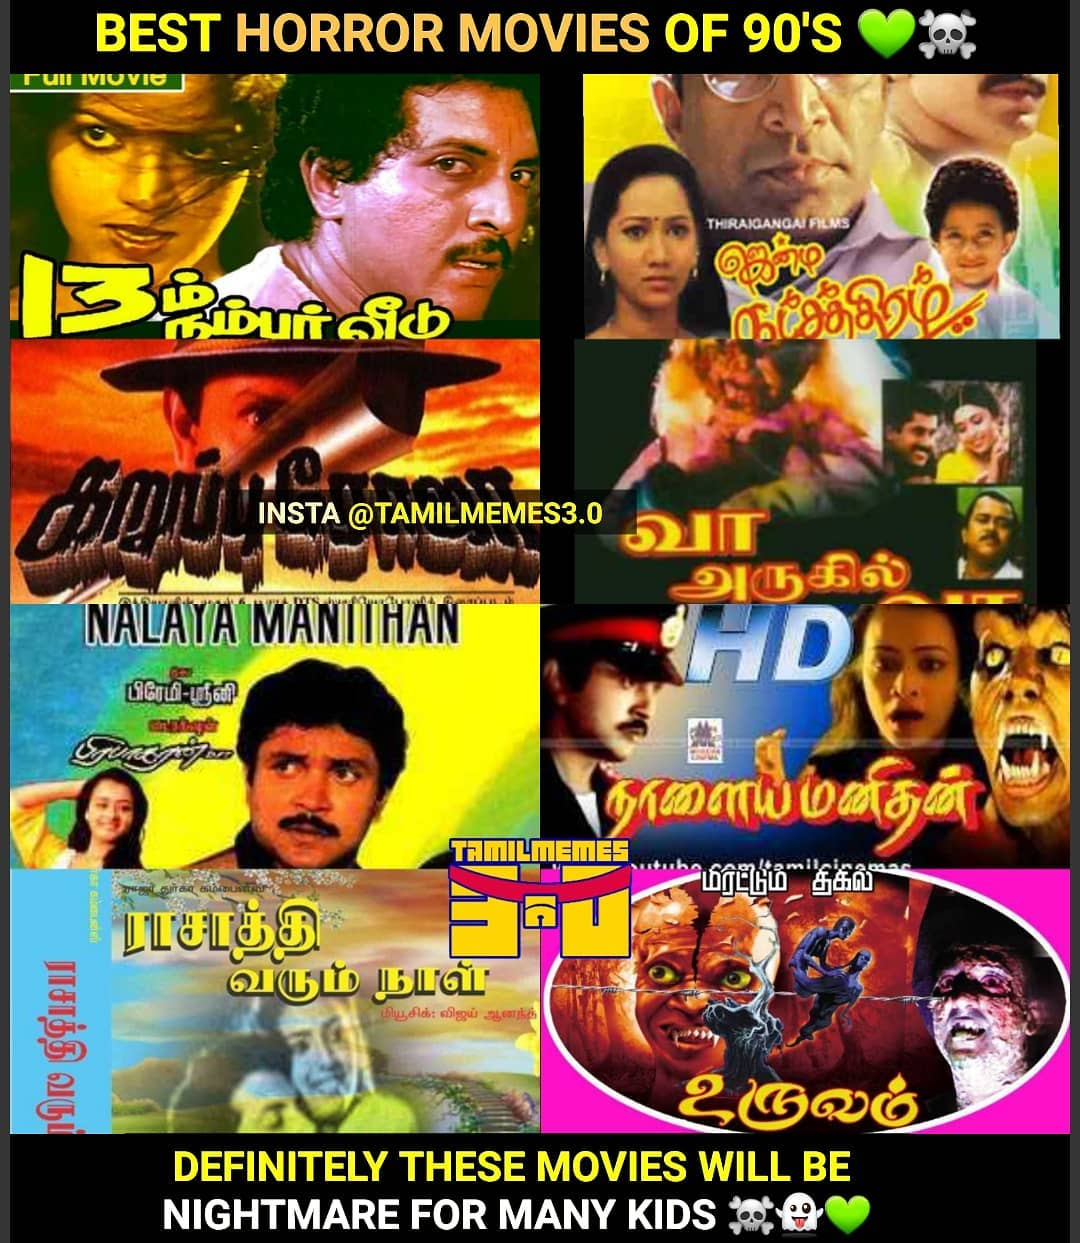 Best horror movies of 90s kids meme - Tamil Memes